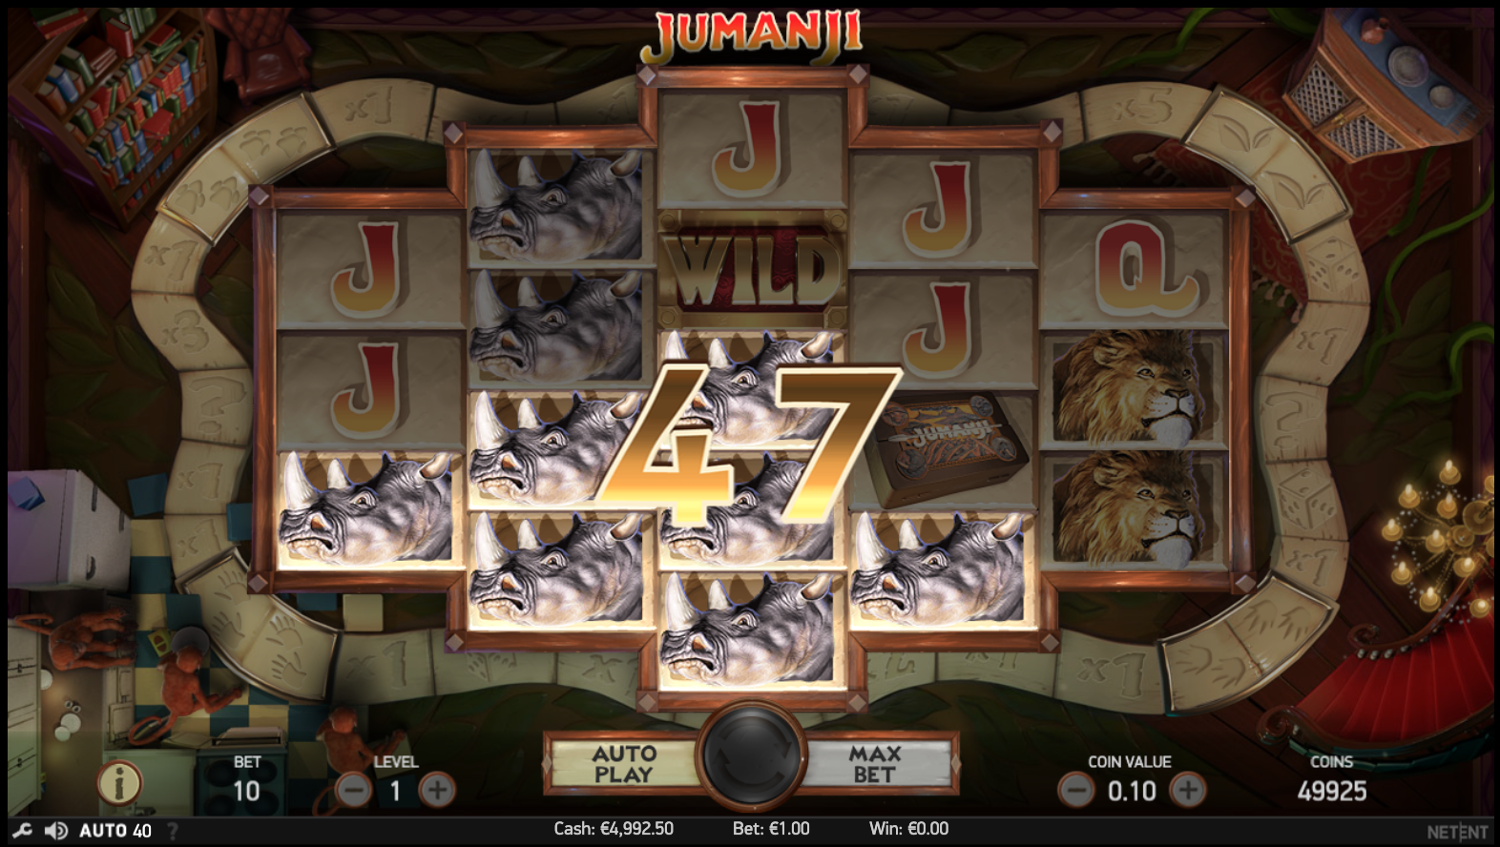 Jumanji simple win